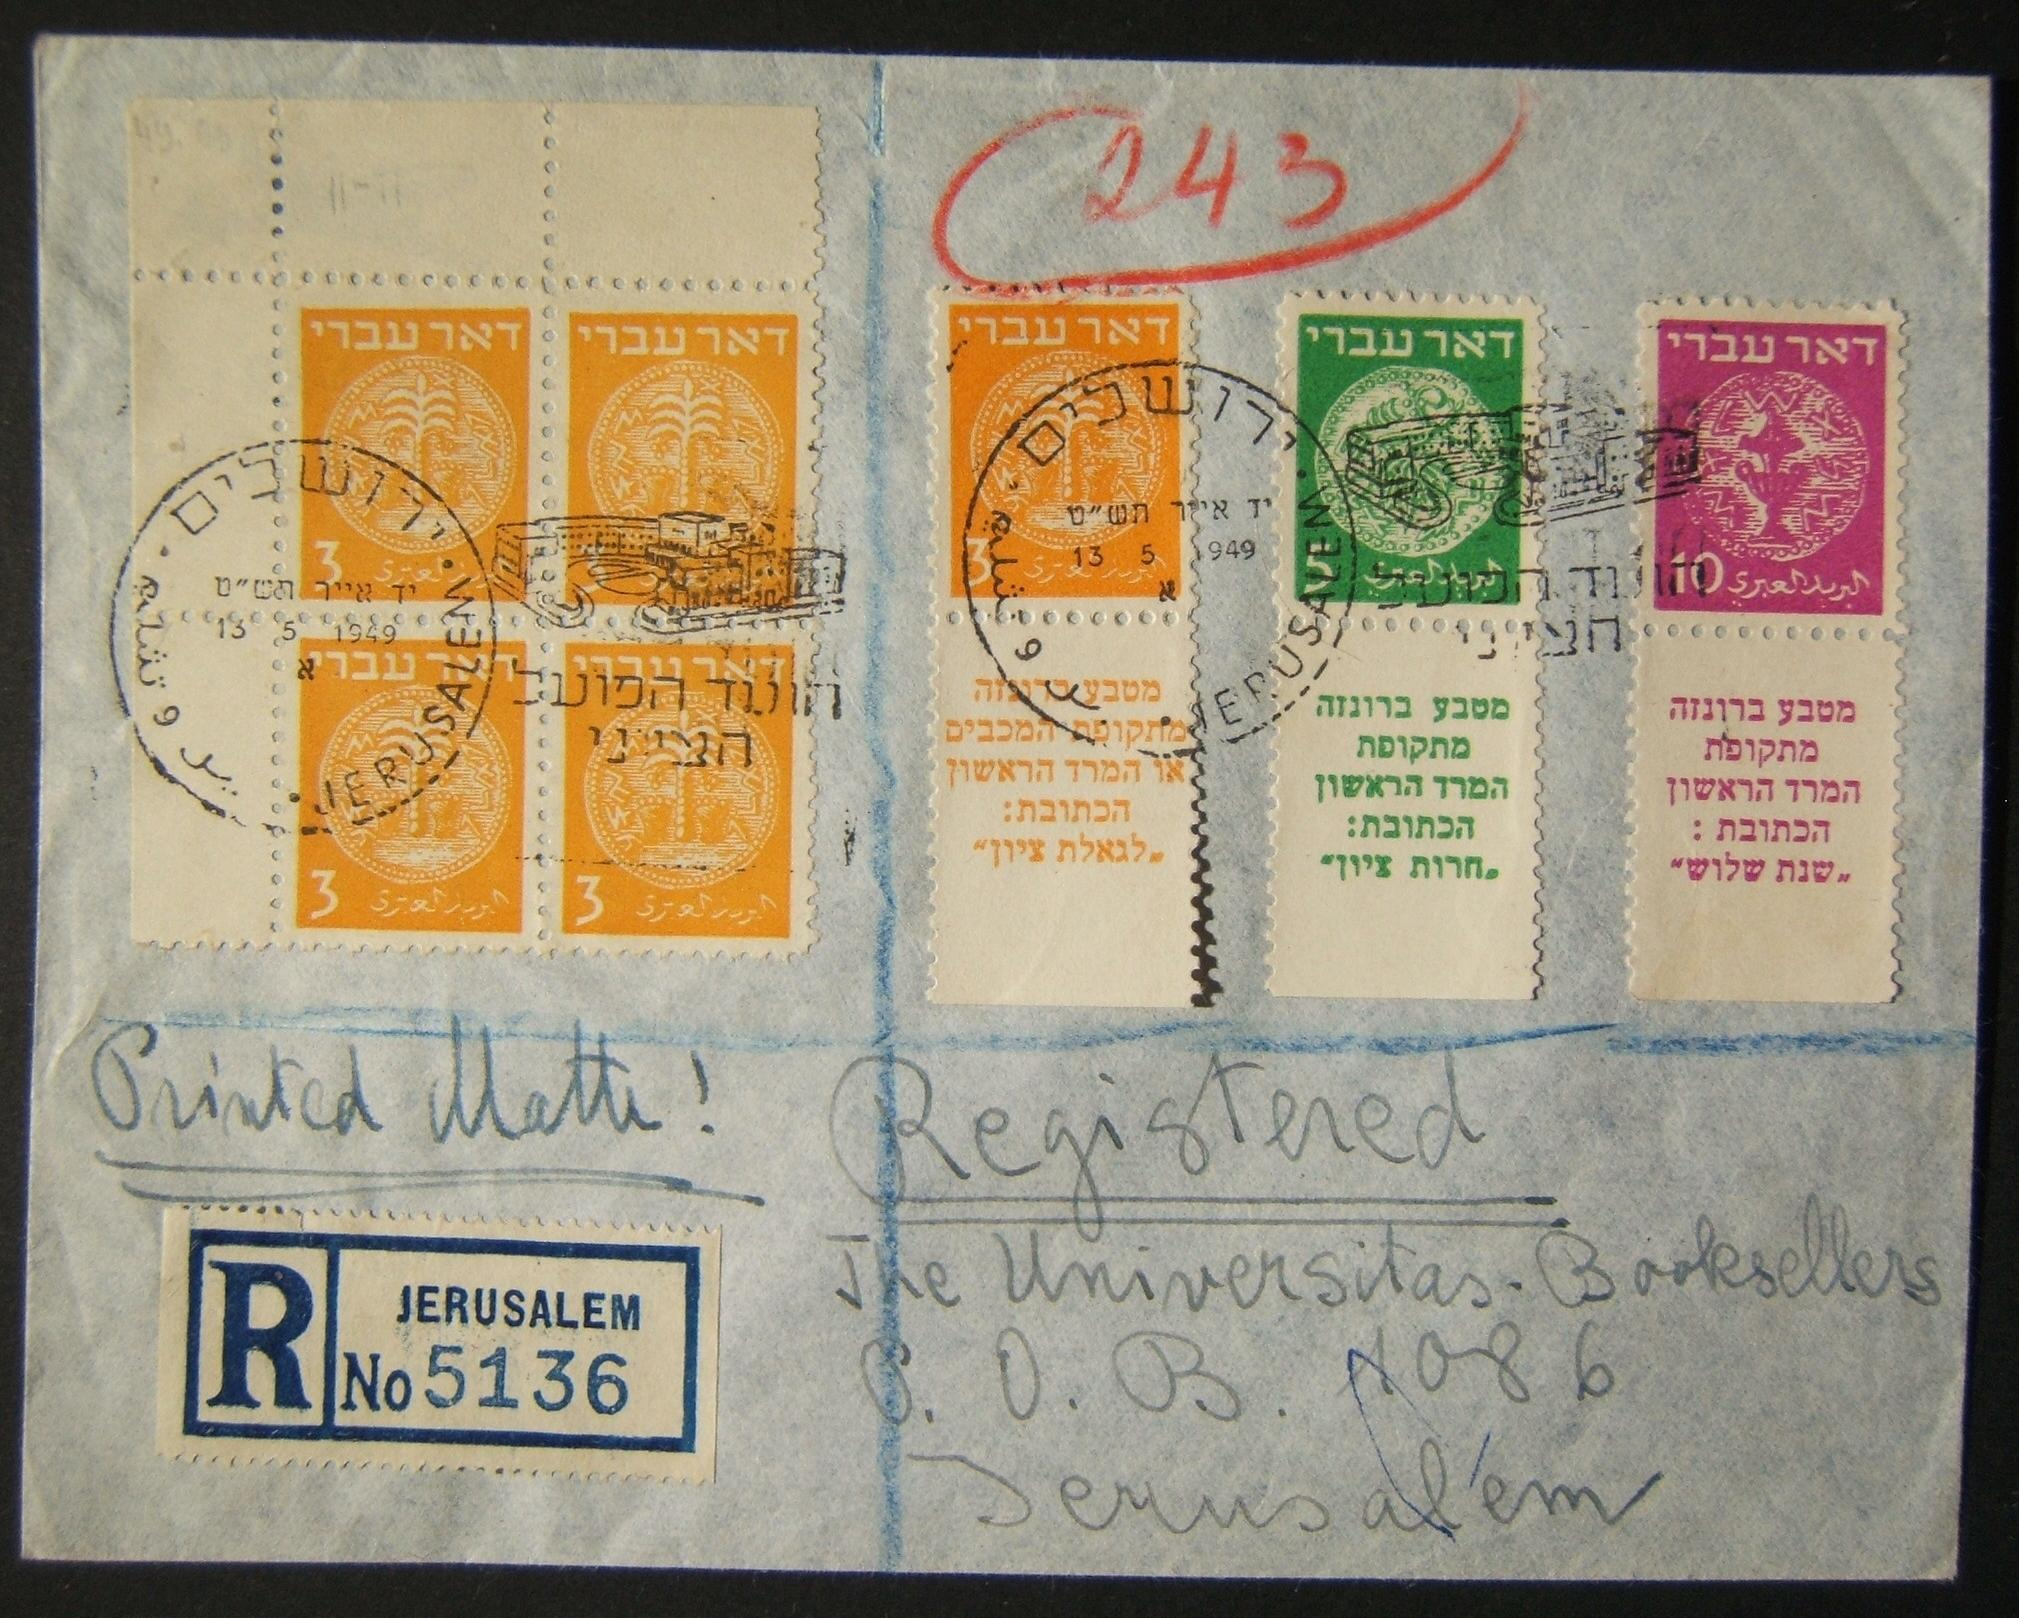 Doar Ivri PO's, rates & routes: 13-5-1949 local JERUSALEM registered printed matter commercial cover franked 30pr at the DO-2 period rate (5pr pm rate + 25pr registration) using 3